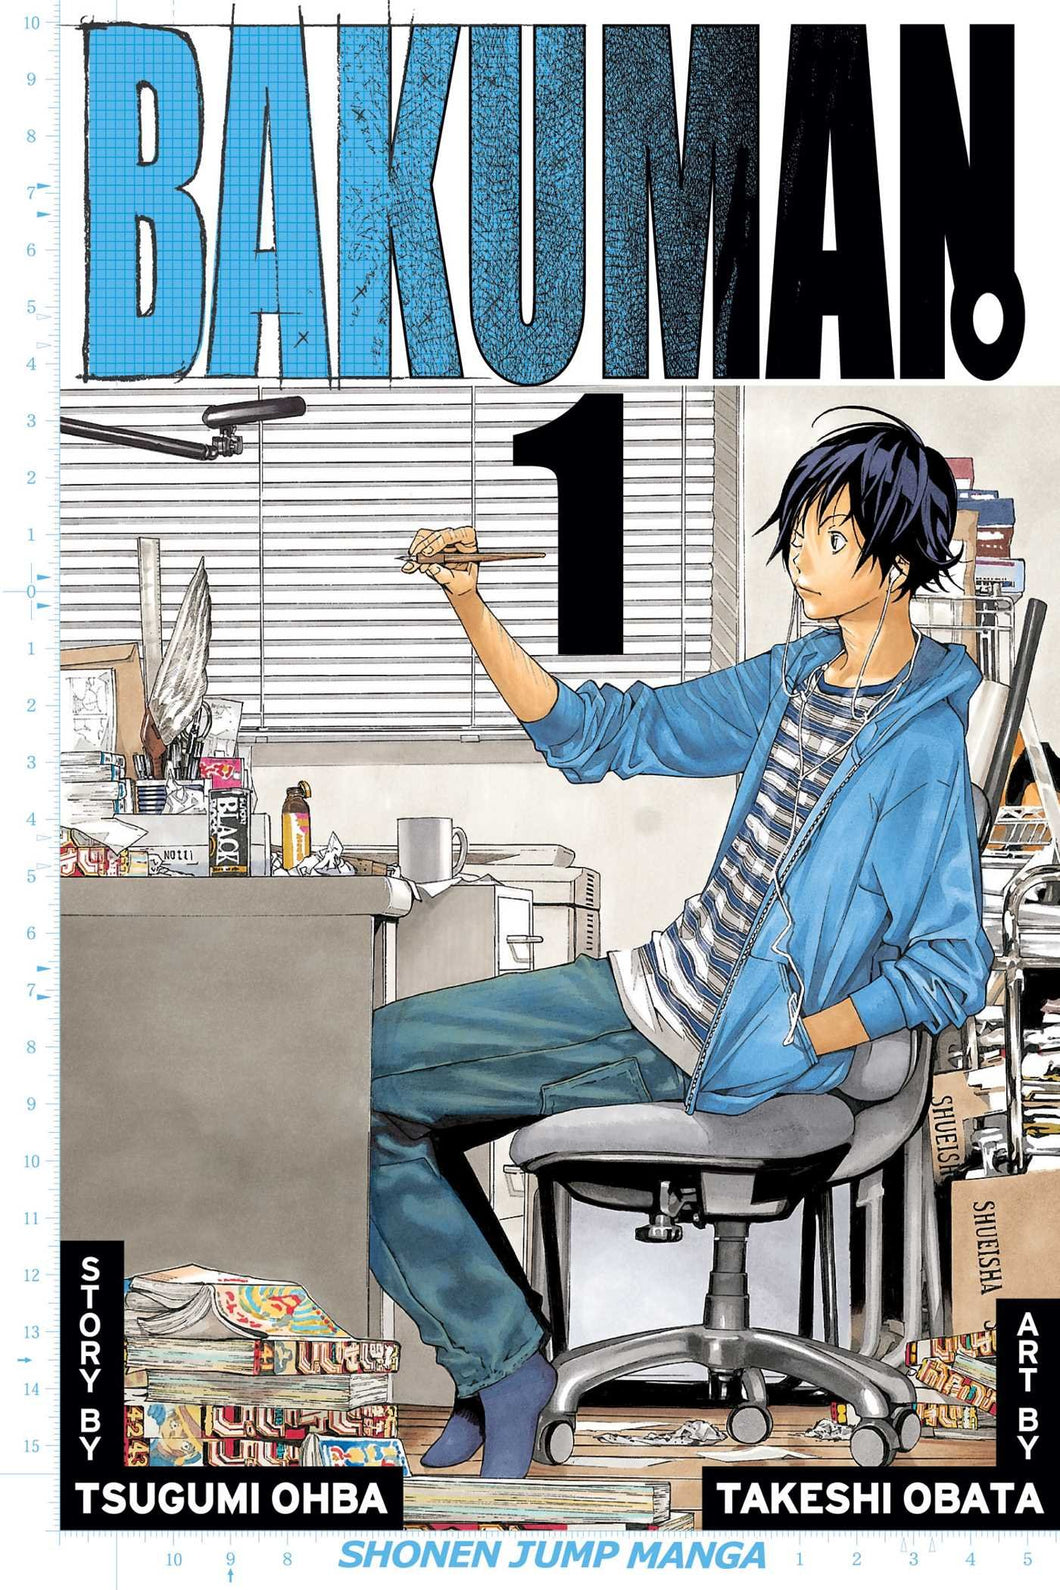 Bakuman Vol. 1 by Tsugumi Ohba and Takeshi Obata